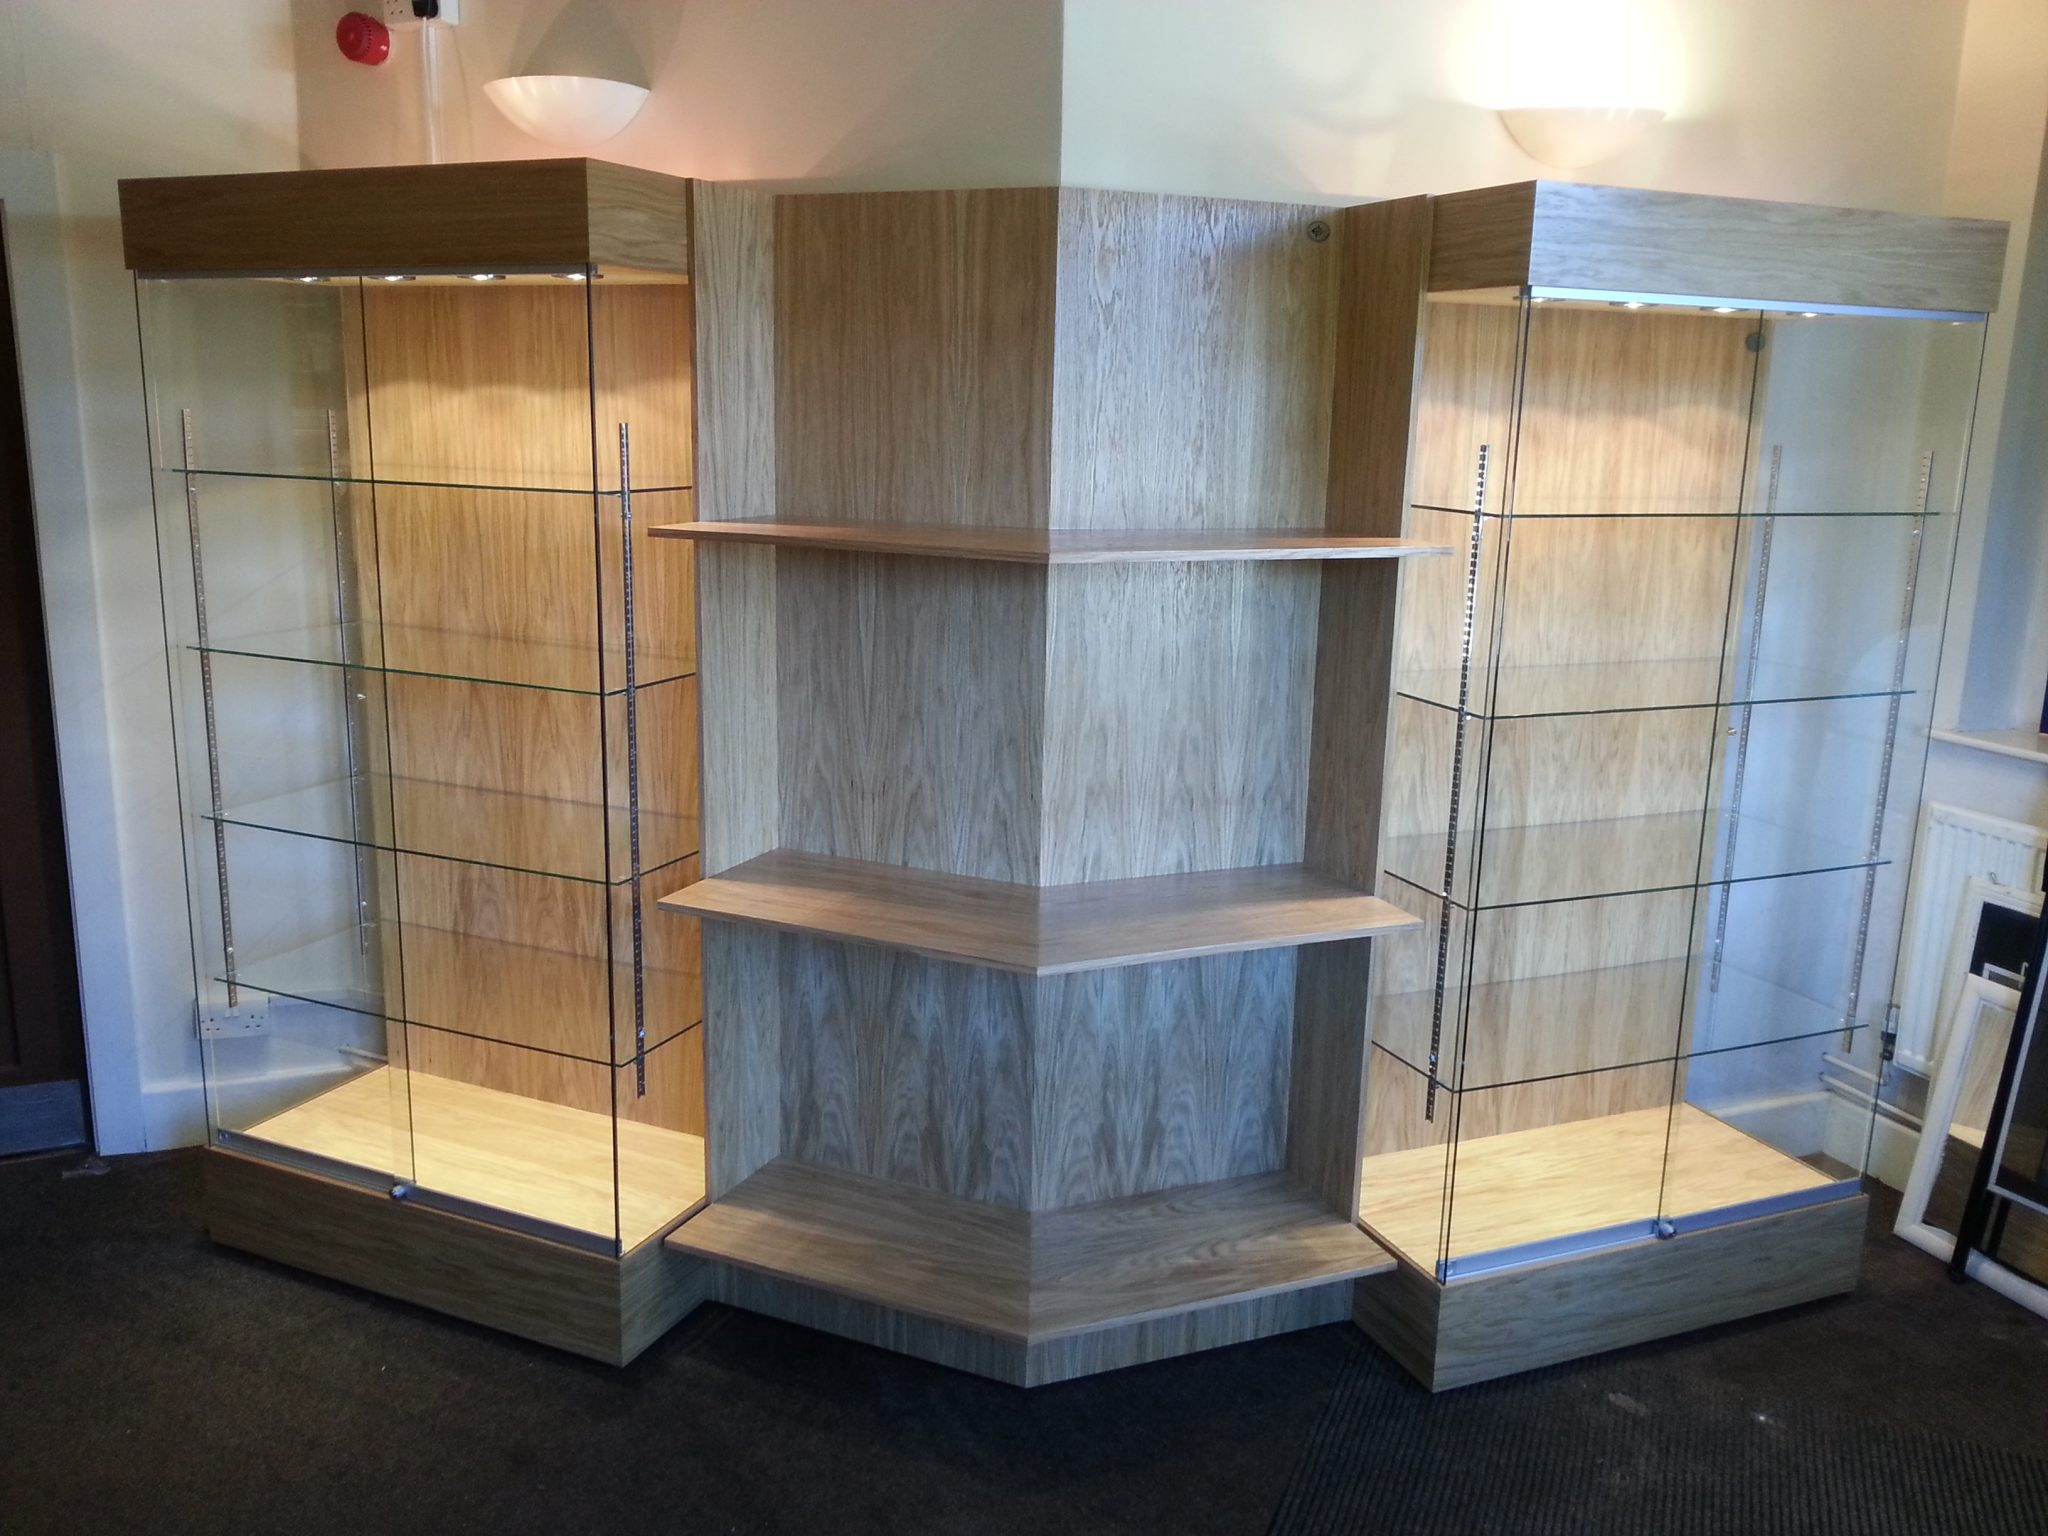 Oak Trophy Display Cabinets shelving to display visitor information